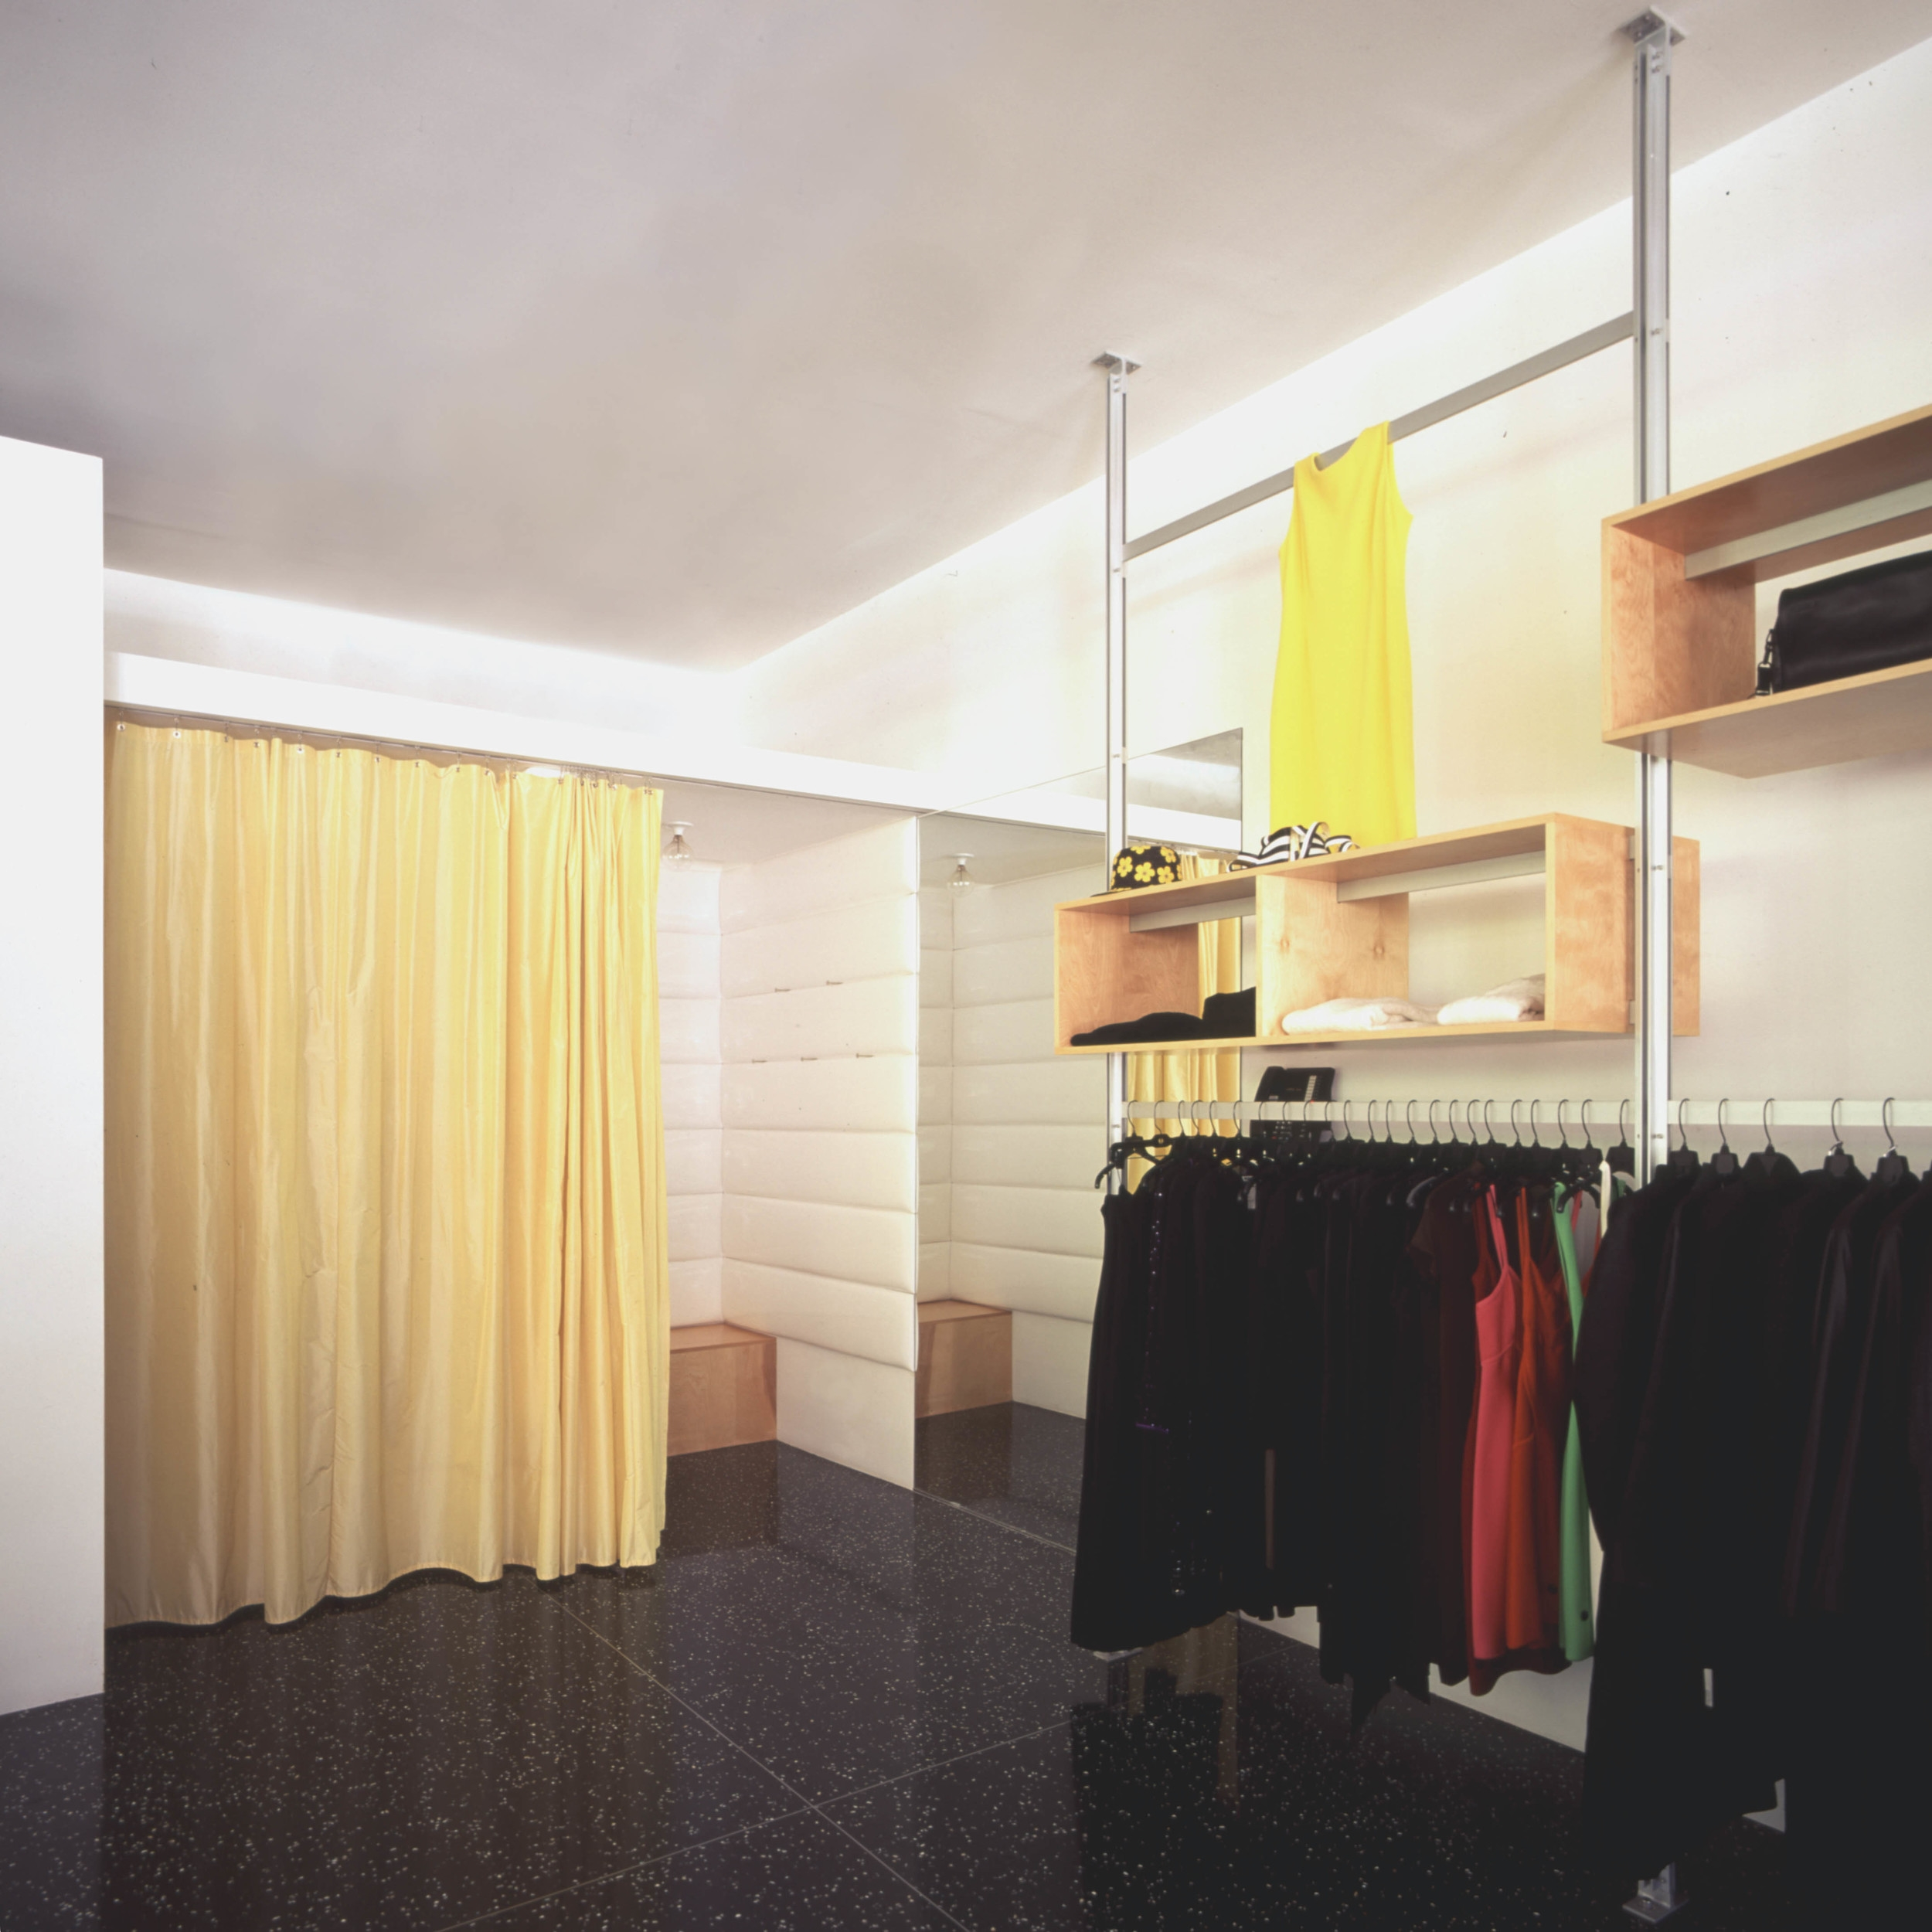 Maxfield Dressing Rooms with Black Terazzo Floors, Padded Wall Paneling and Silk Curtains